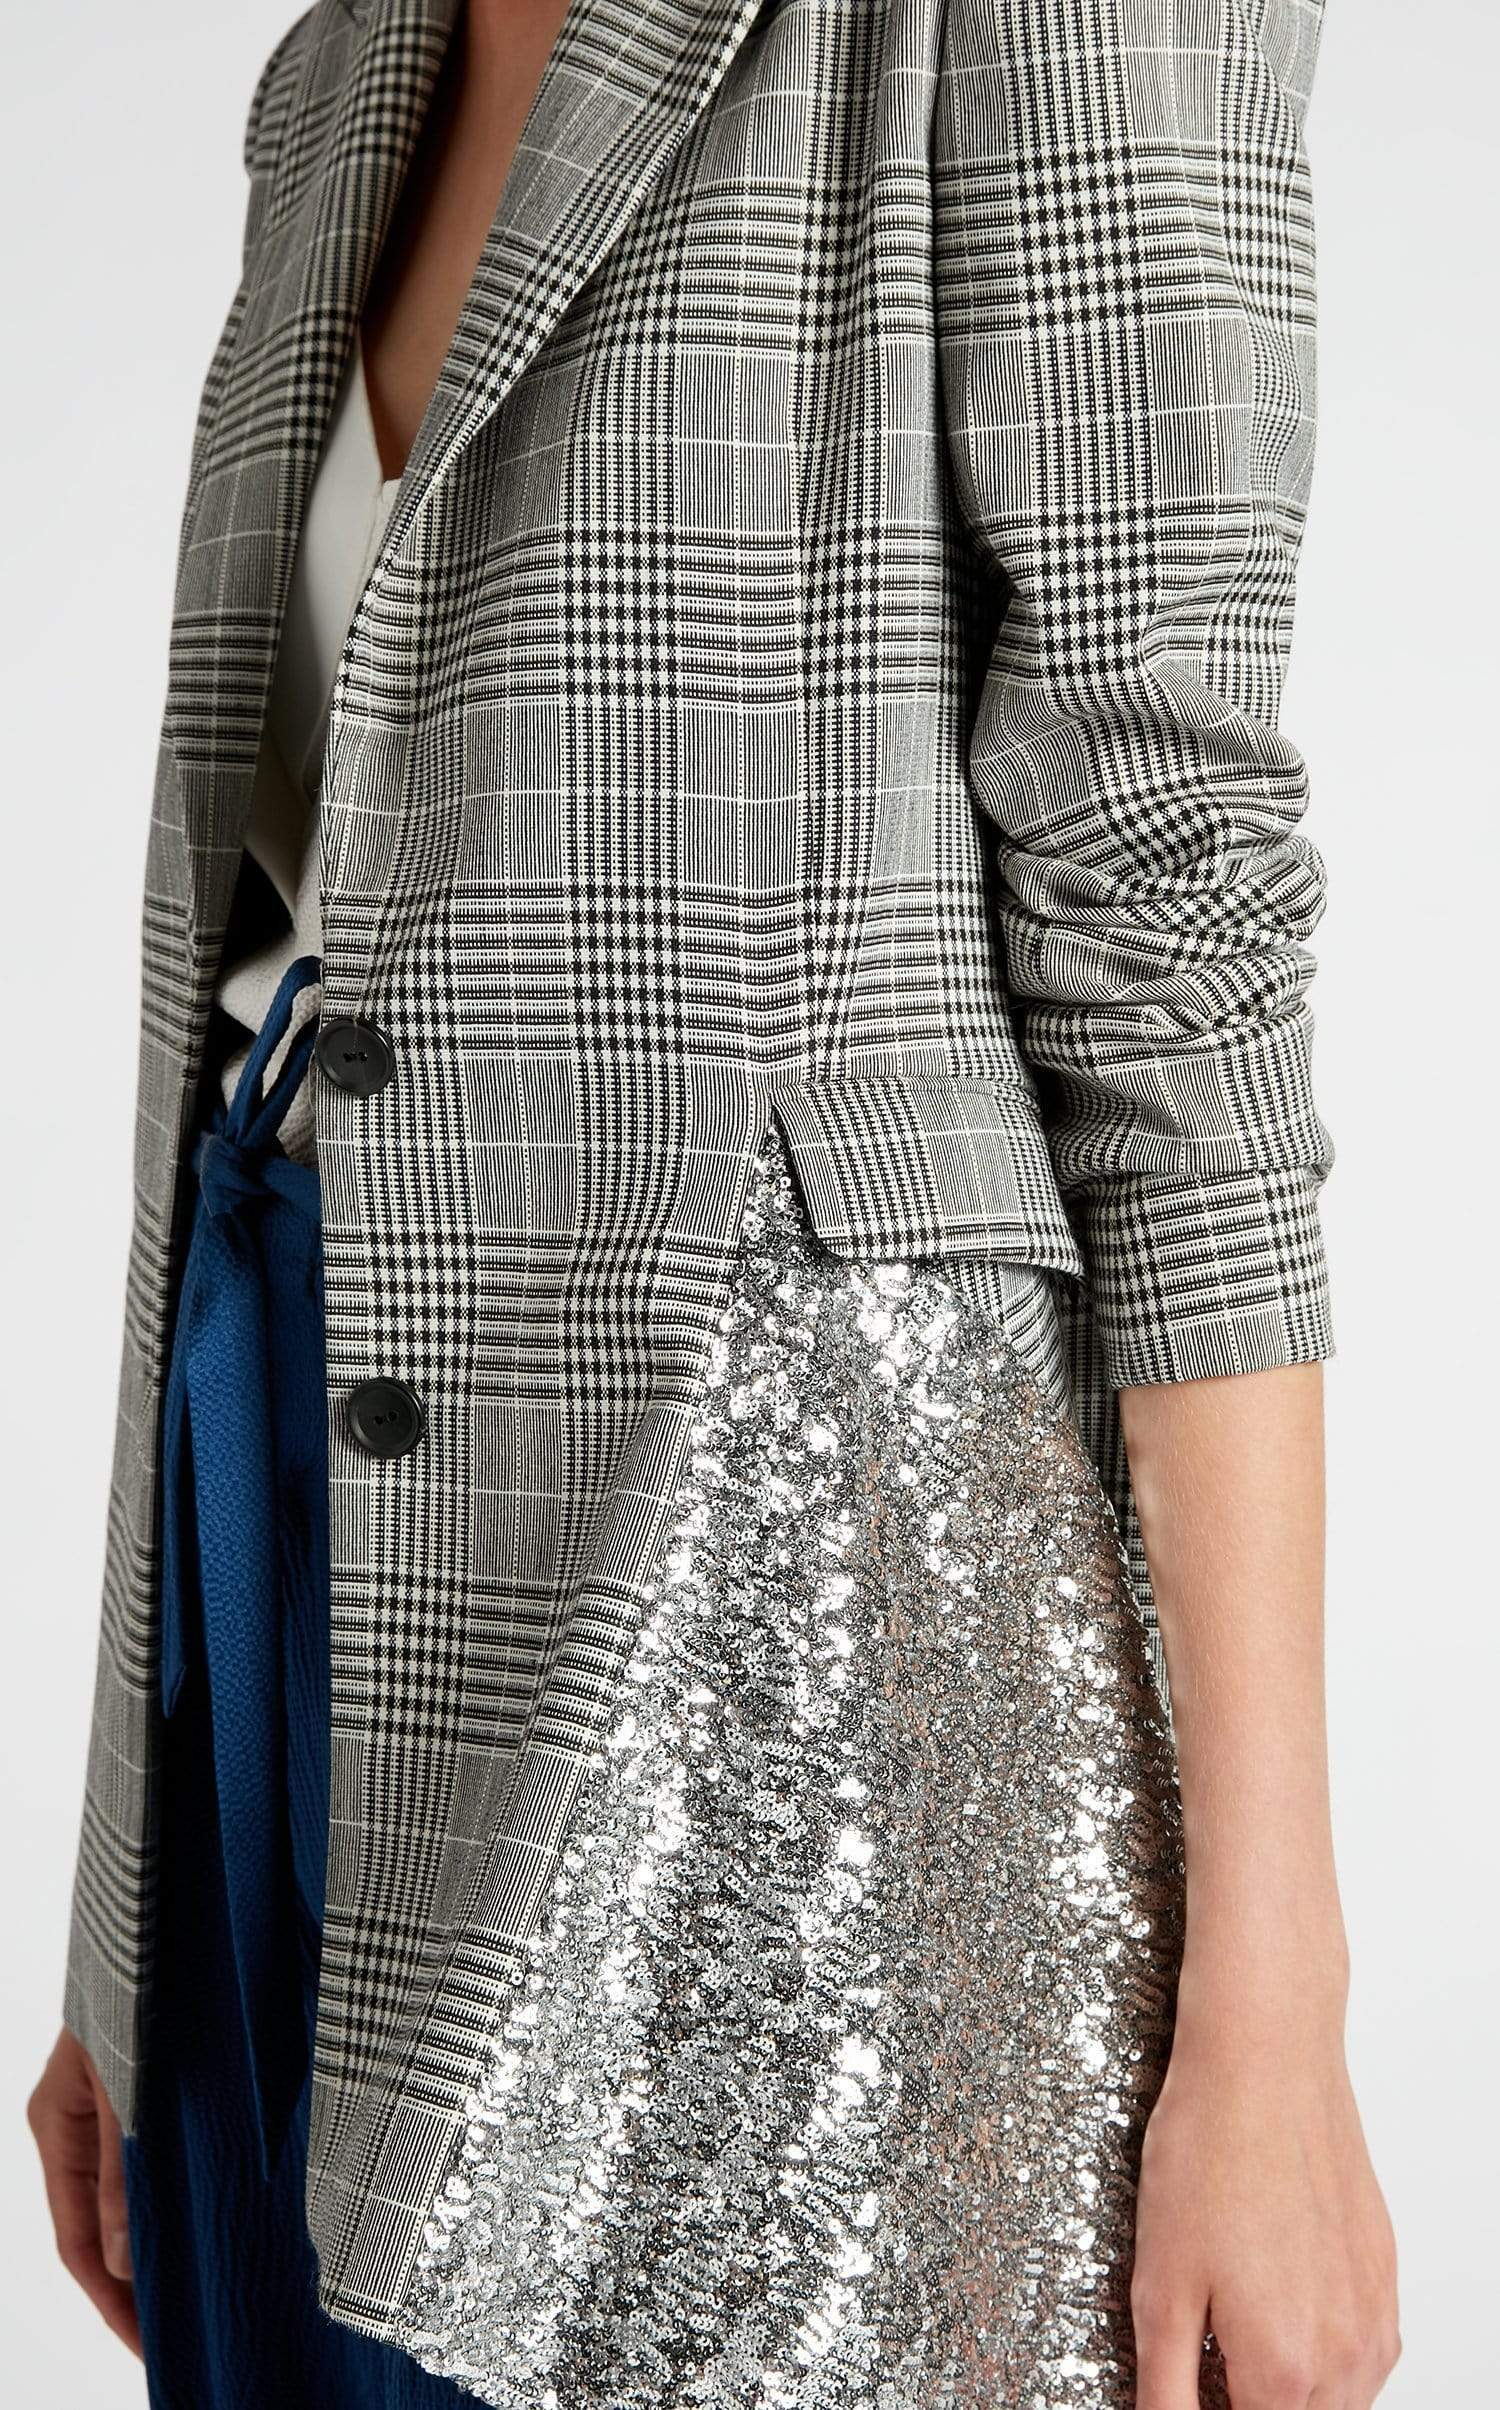 Marmont Jacket In Monochrome/Silver from Roland Mouret